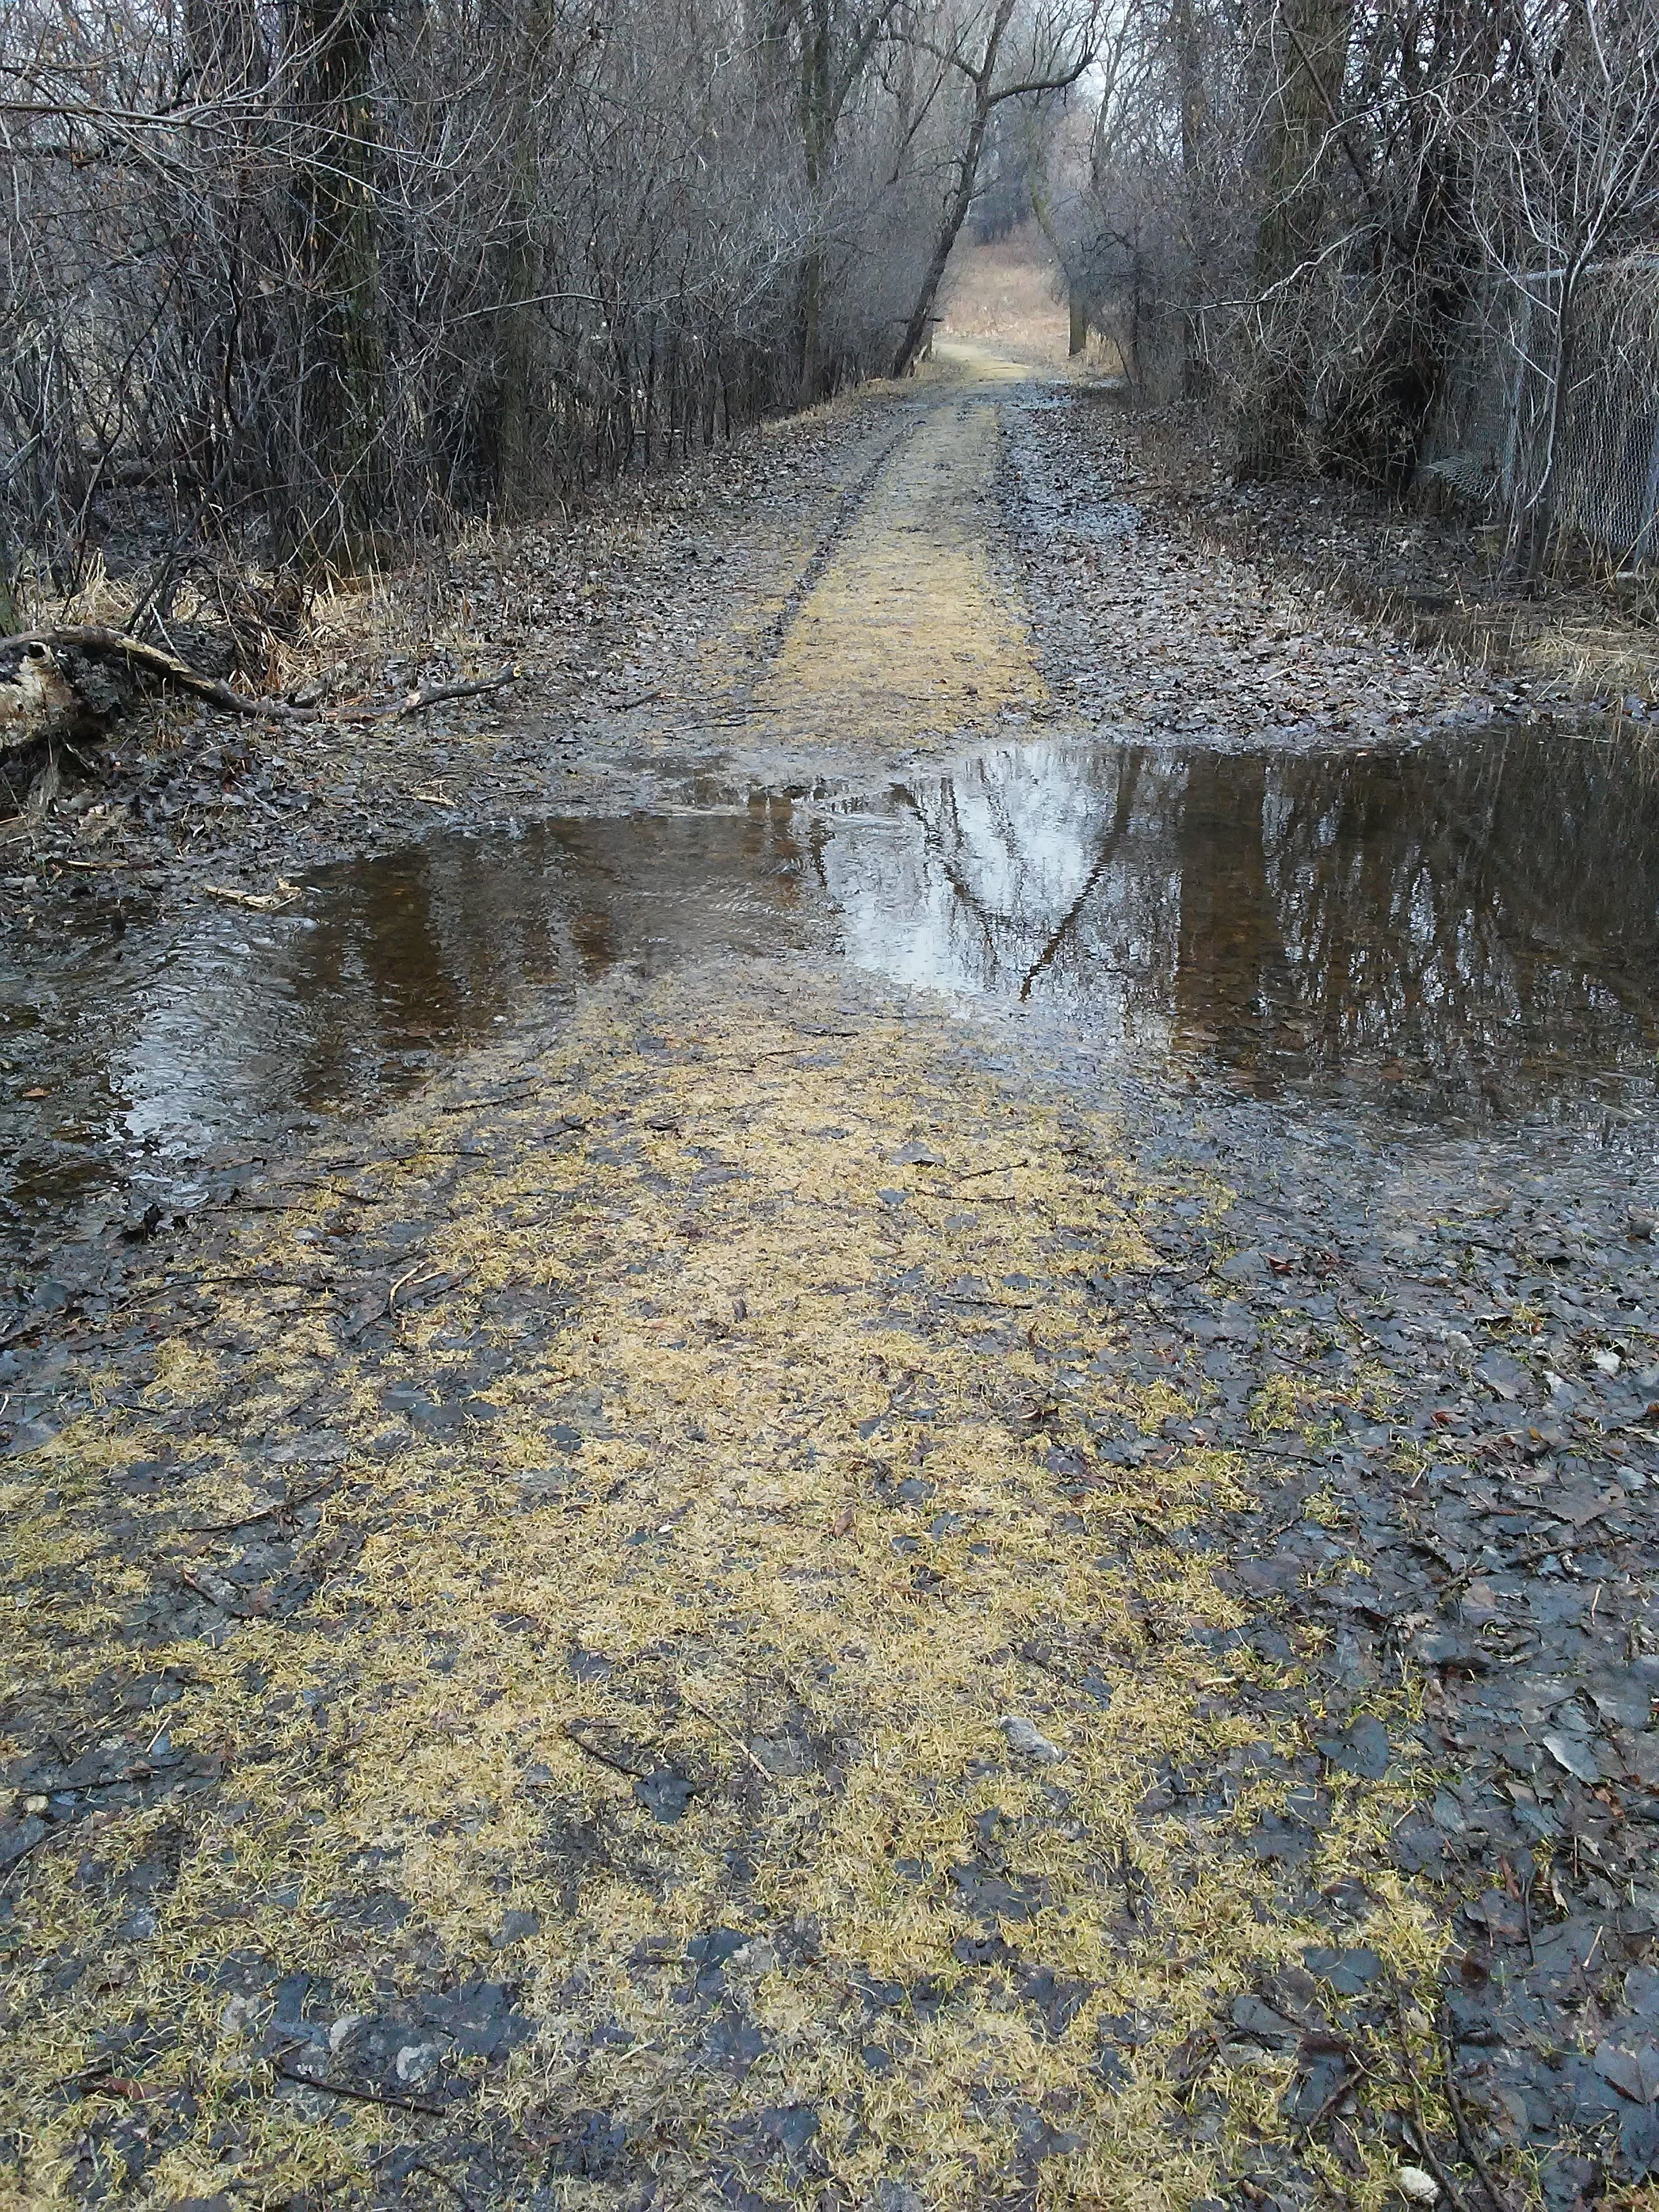 water going across a tree lined path in early spring. All is gray and tan and brown